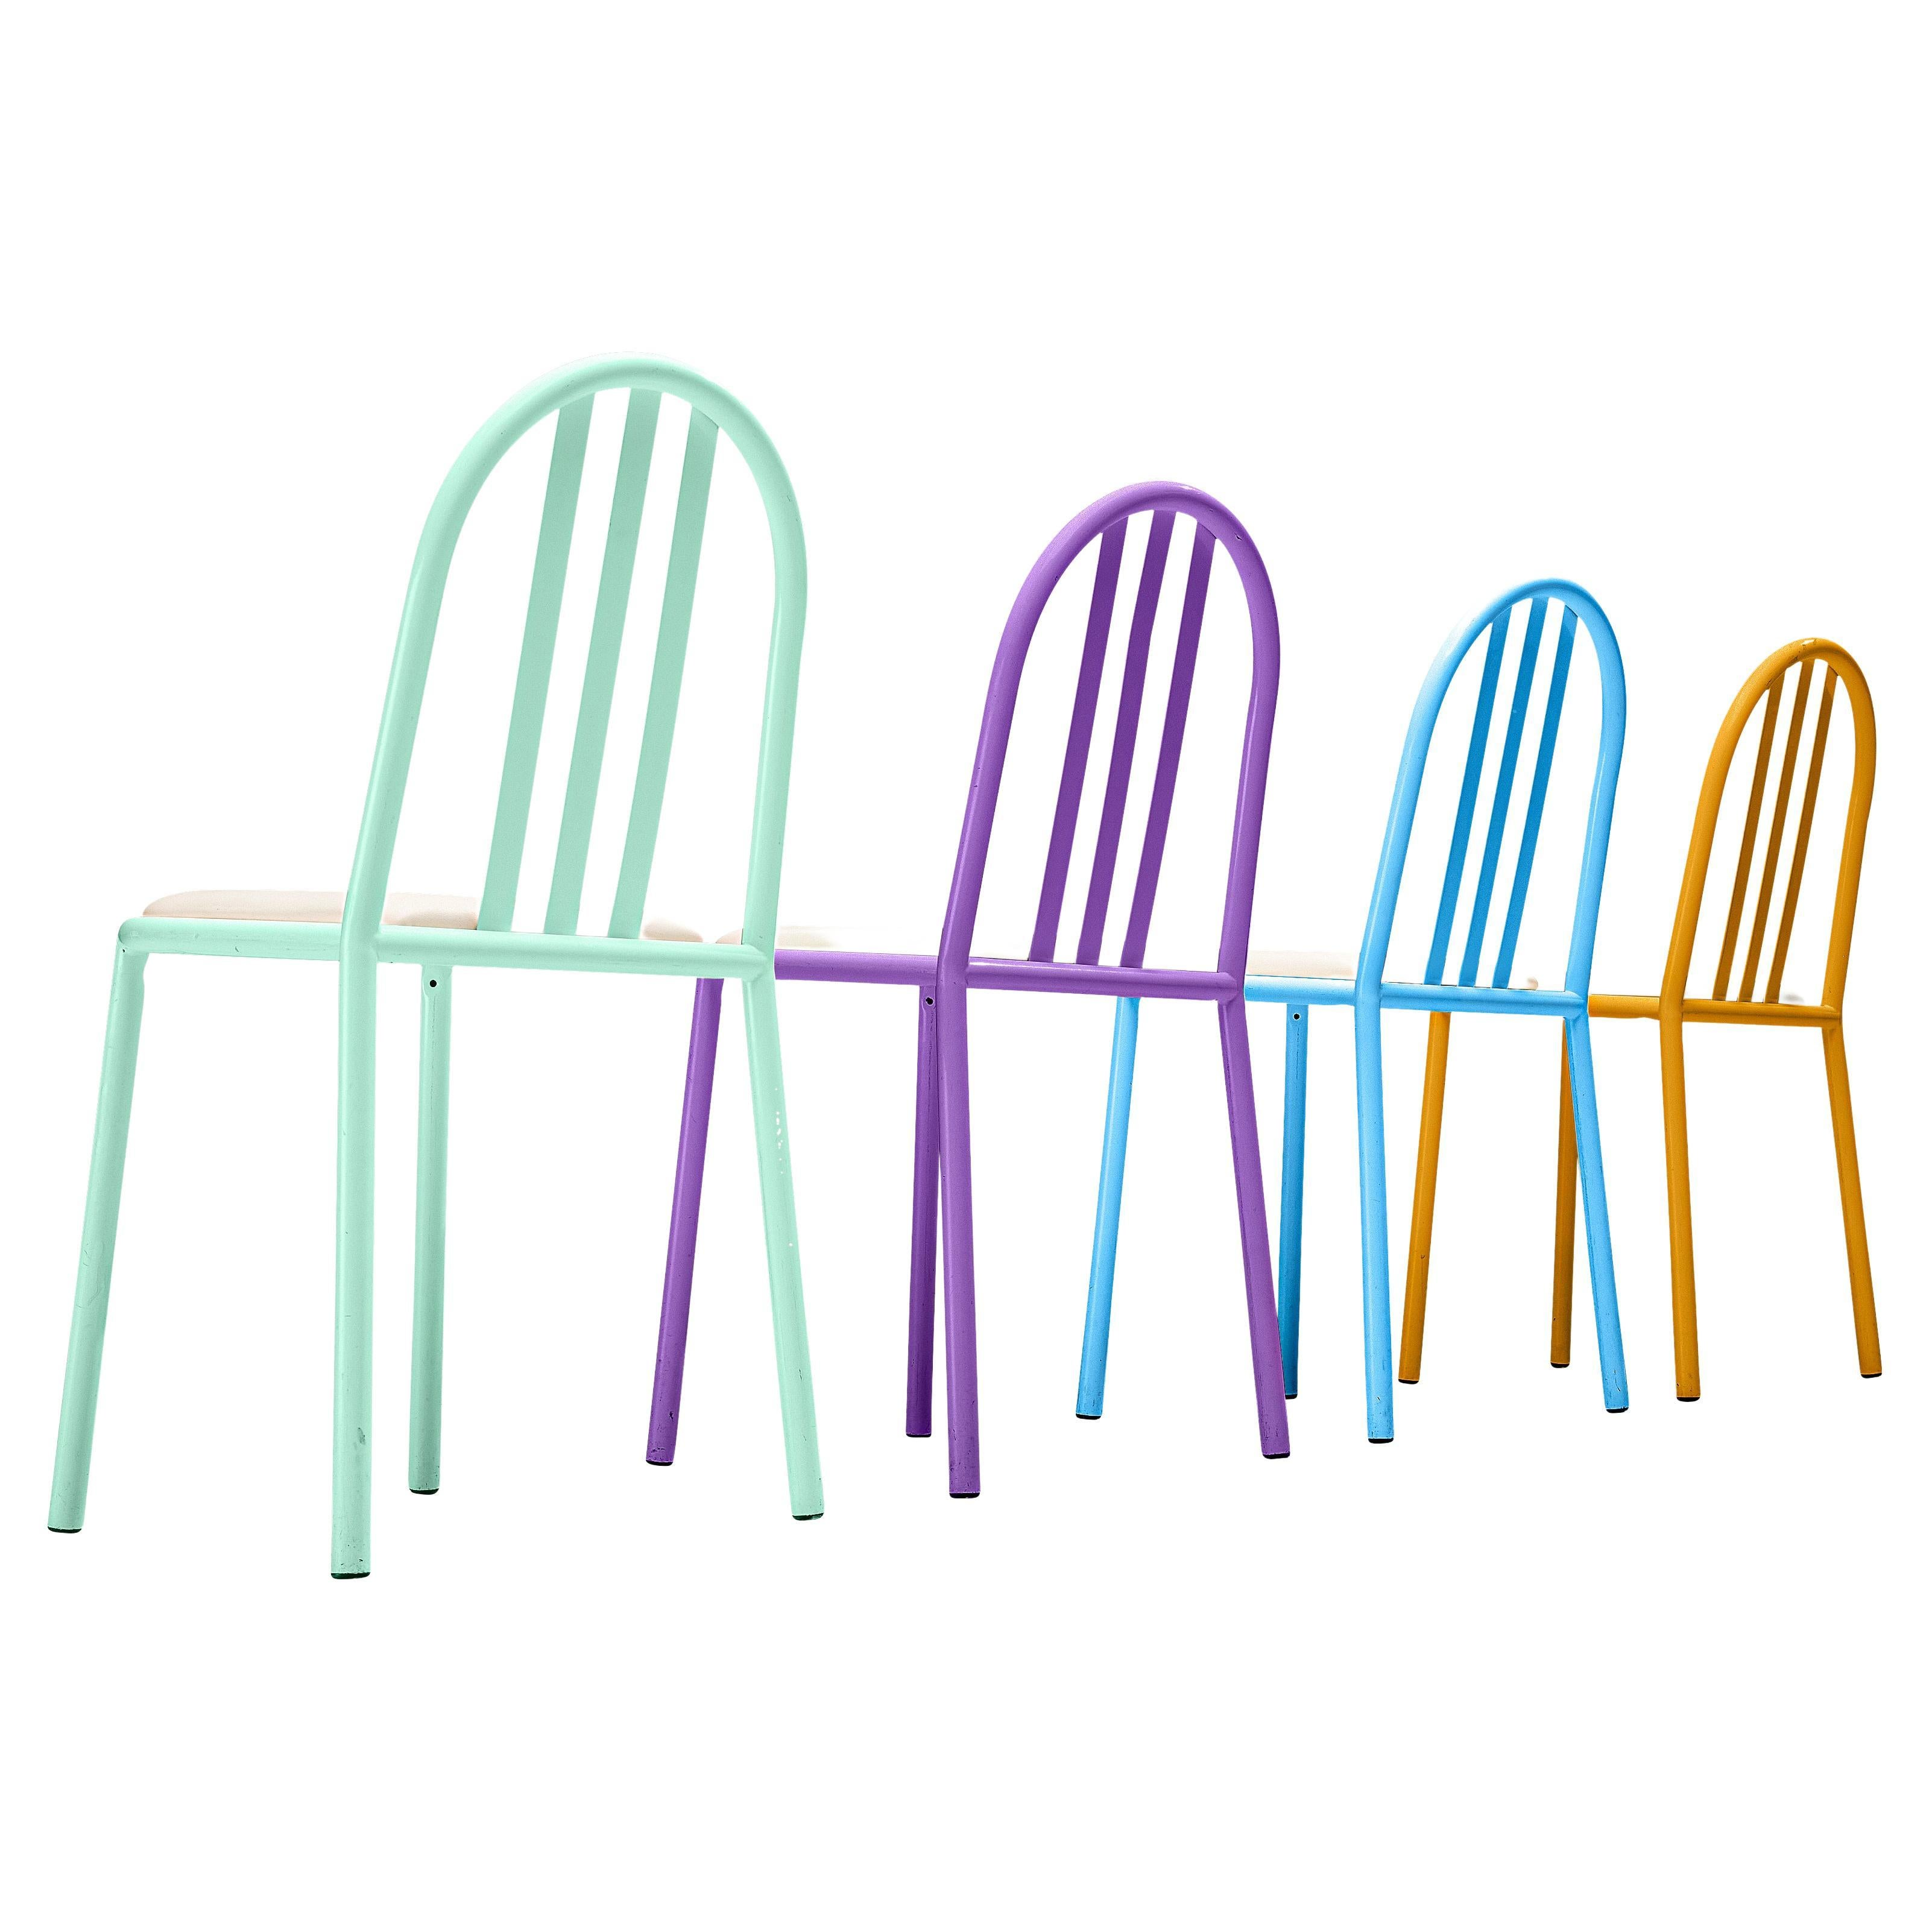 Robert Mallet-Stevens Dining Chairs Model '222' in Colourful Metal